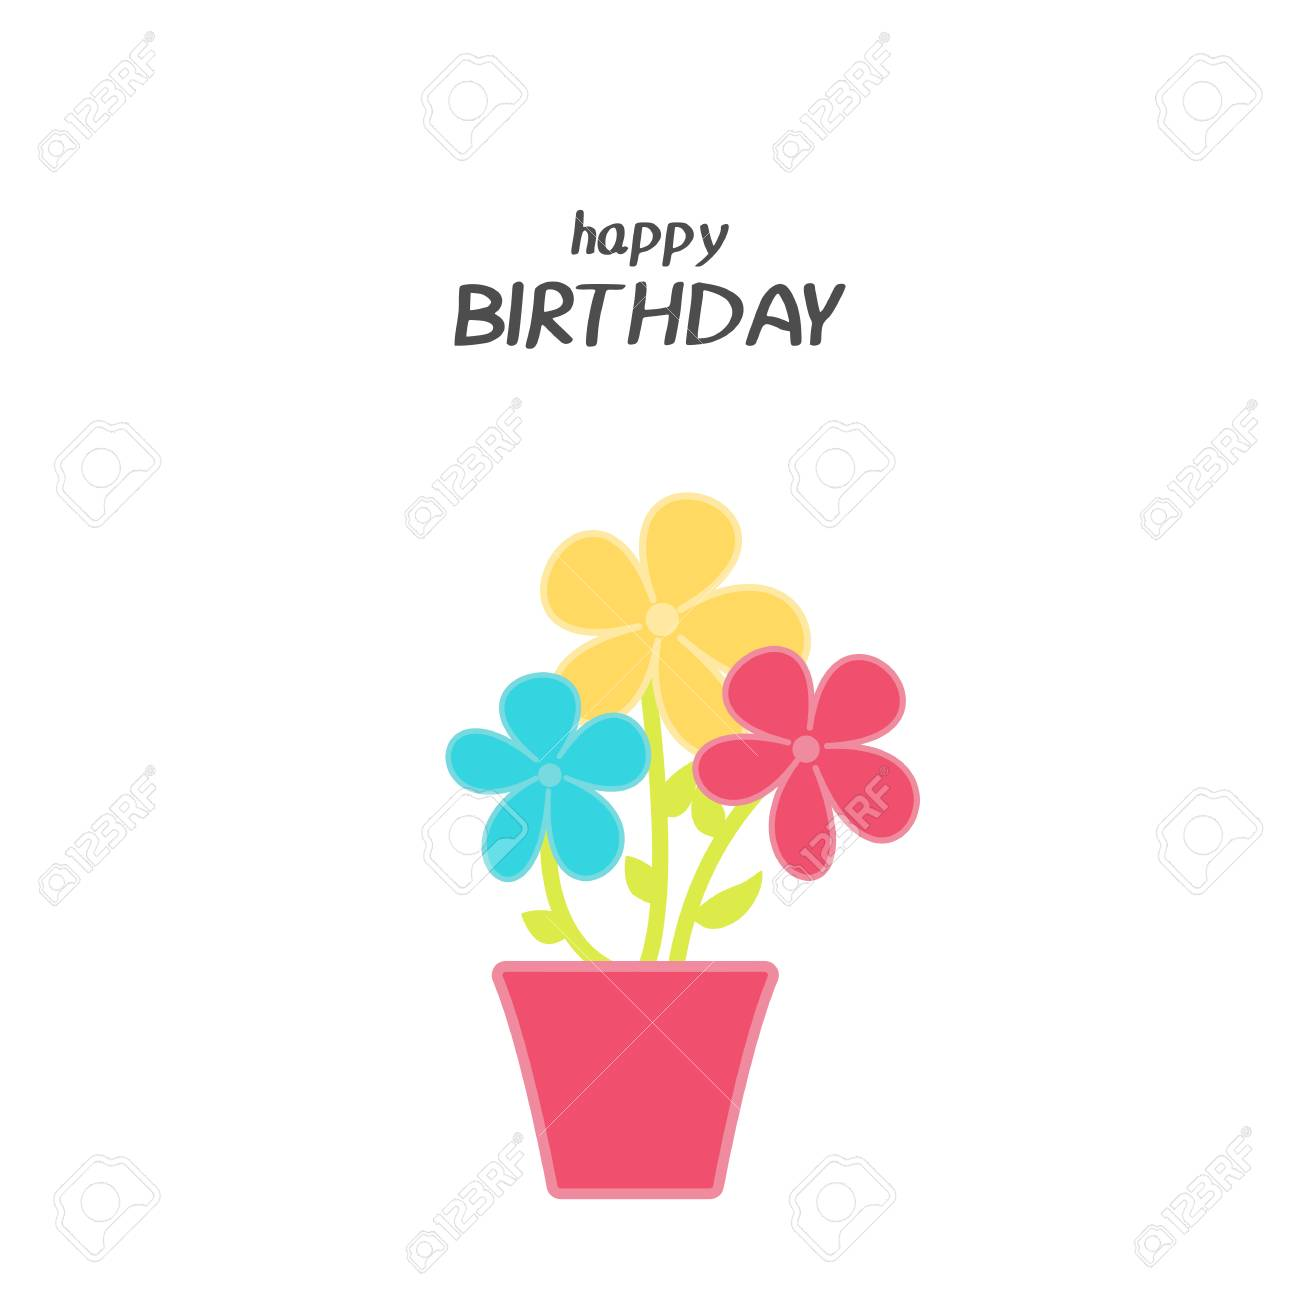 Bright Happy Birthday Greeting Card With Flowers In Minimalist